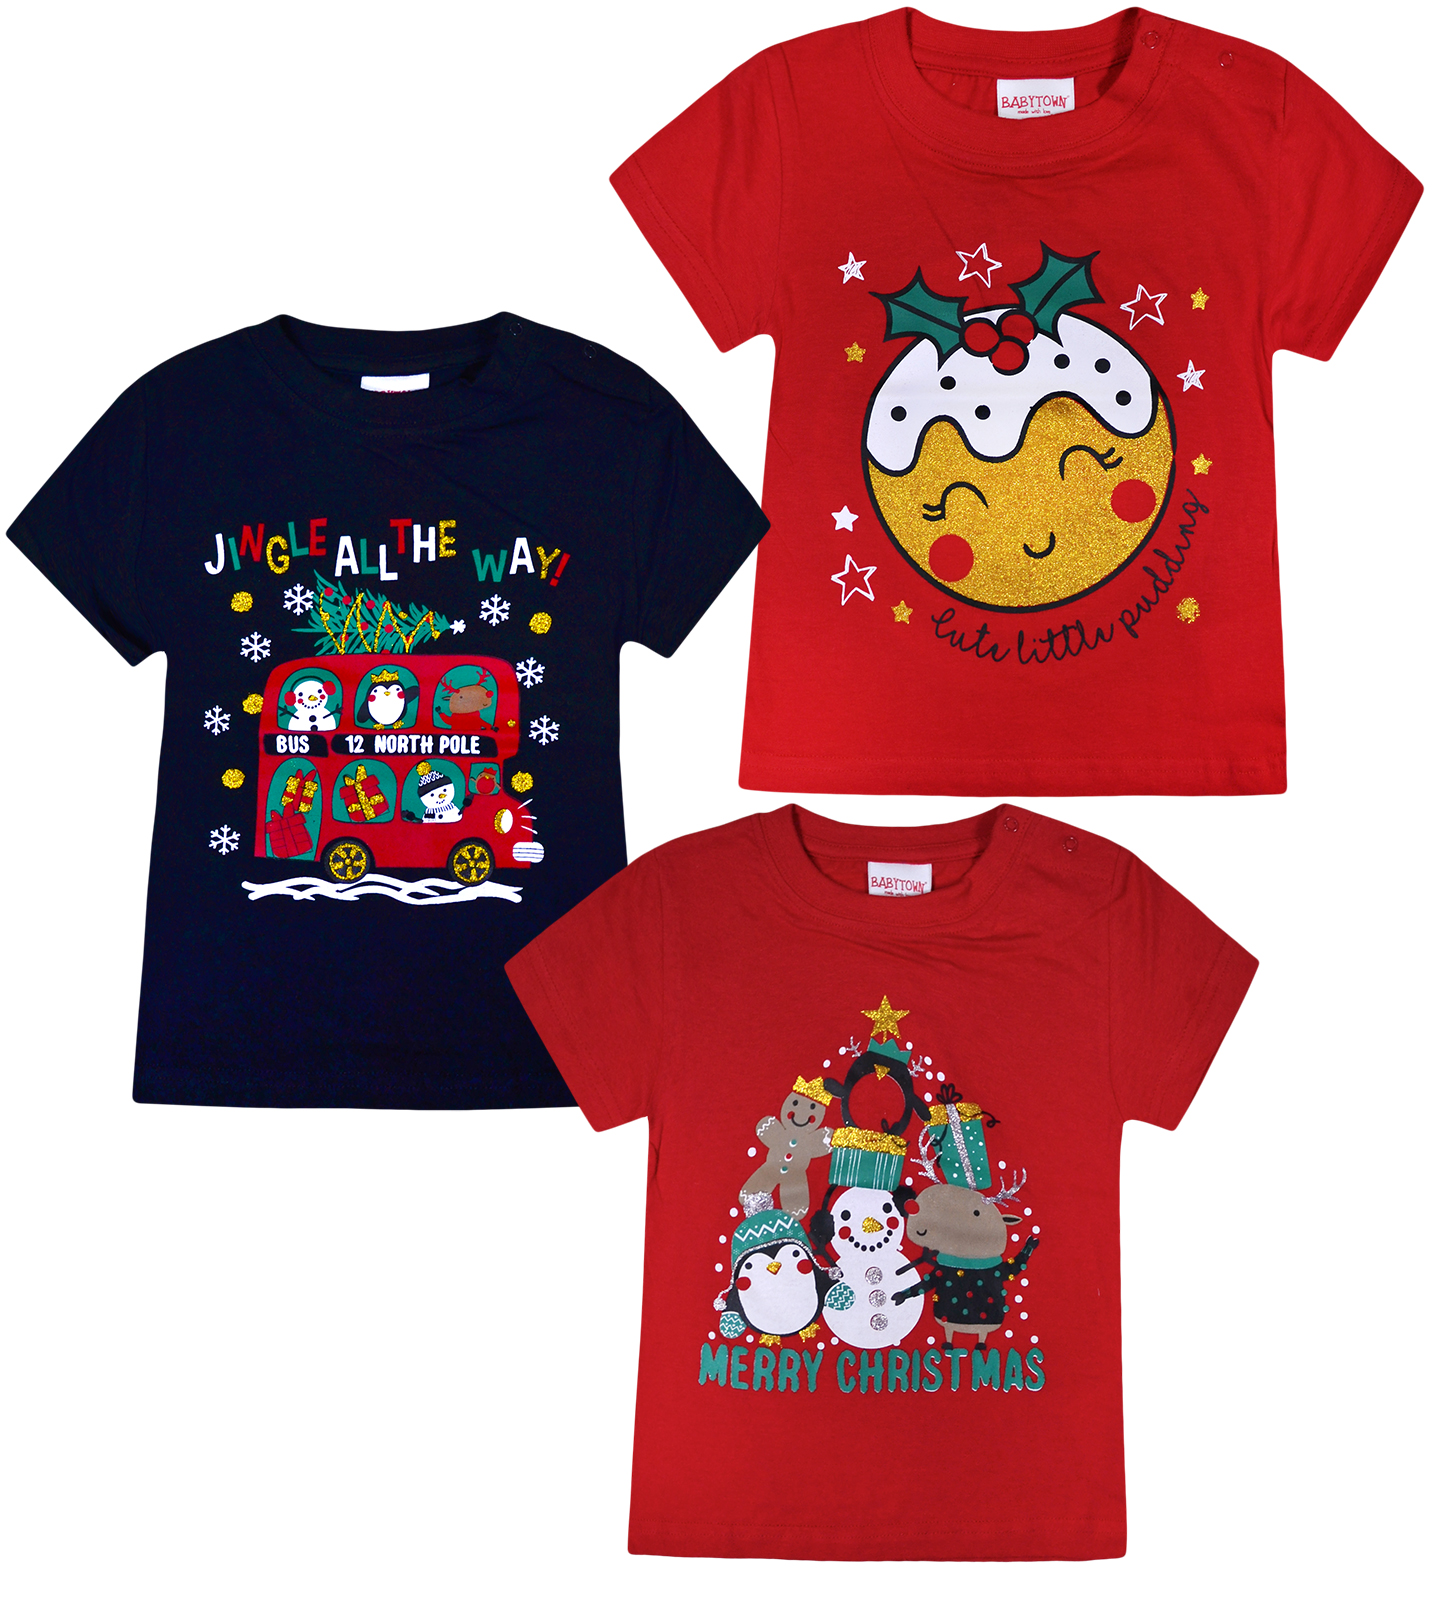 Kids Christmas Shirts.Details About Baby Girls Boys Christmas T Shirts Kids Xmas Top Red Navy Age 3 24 Months